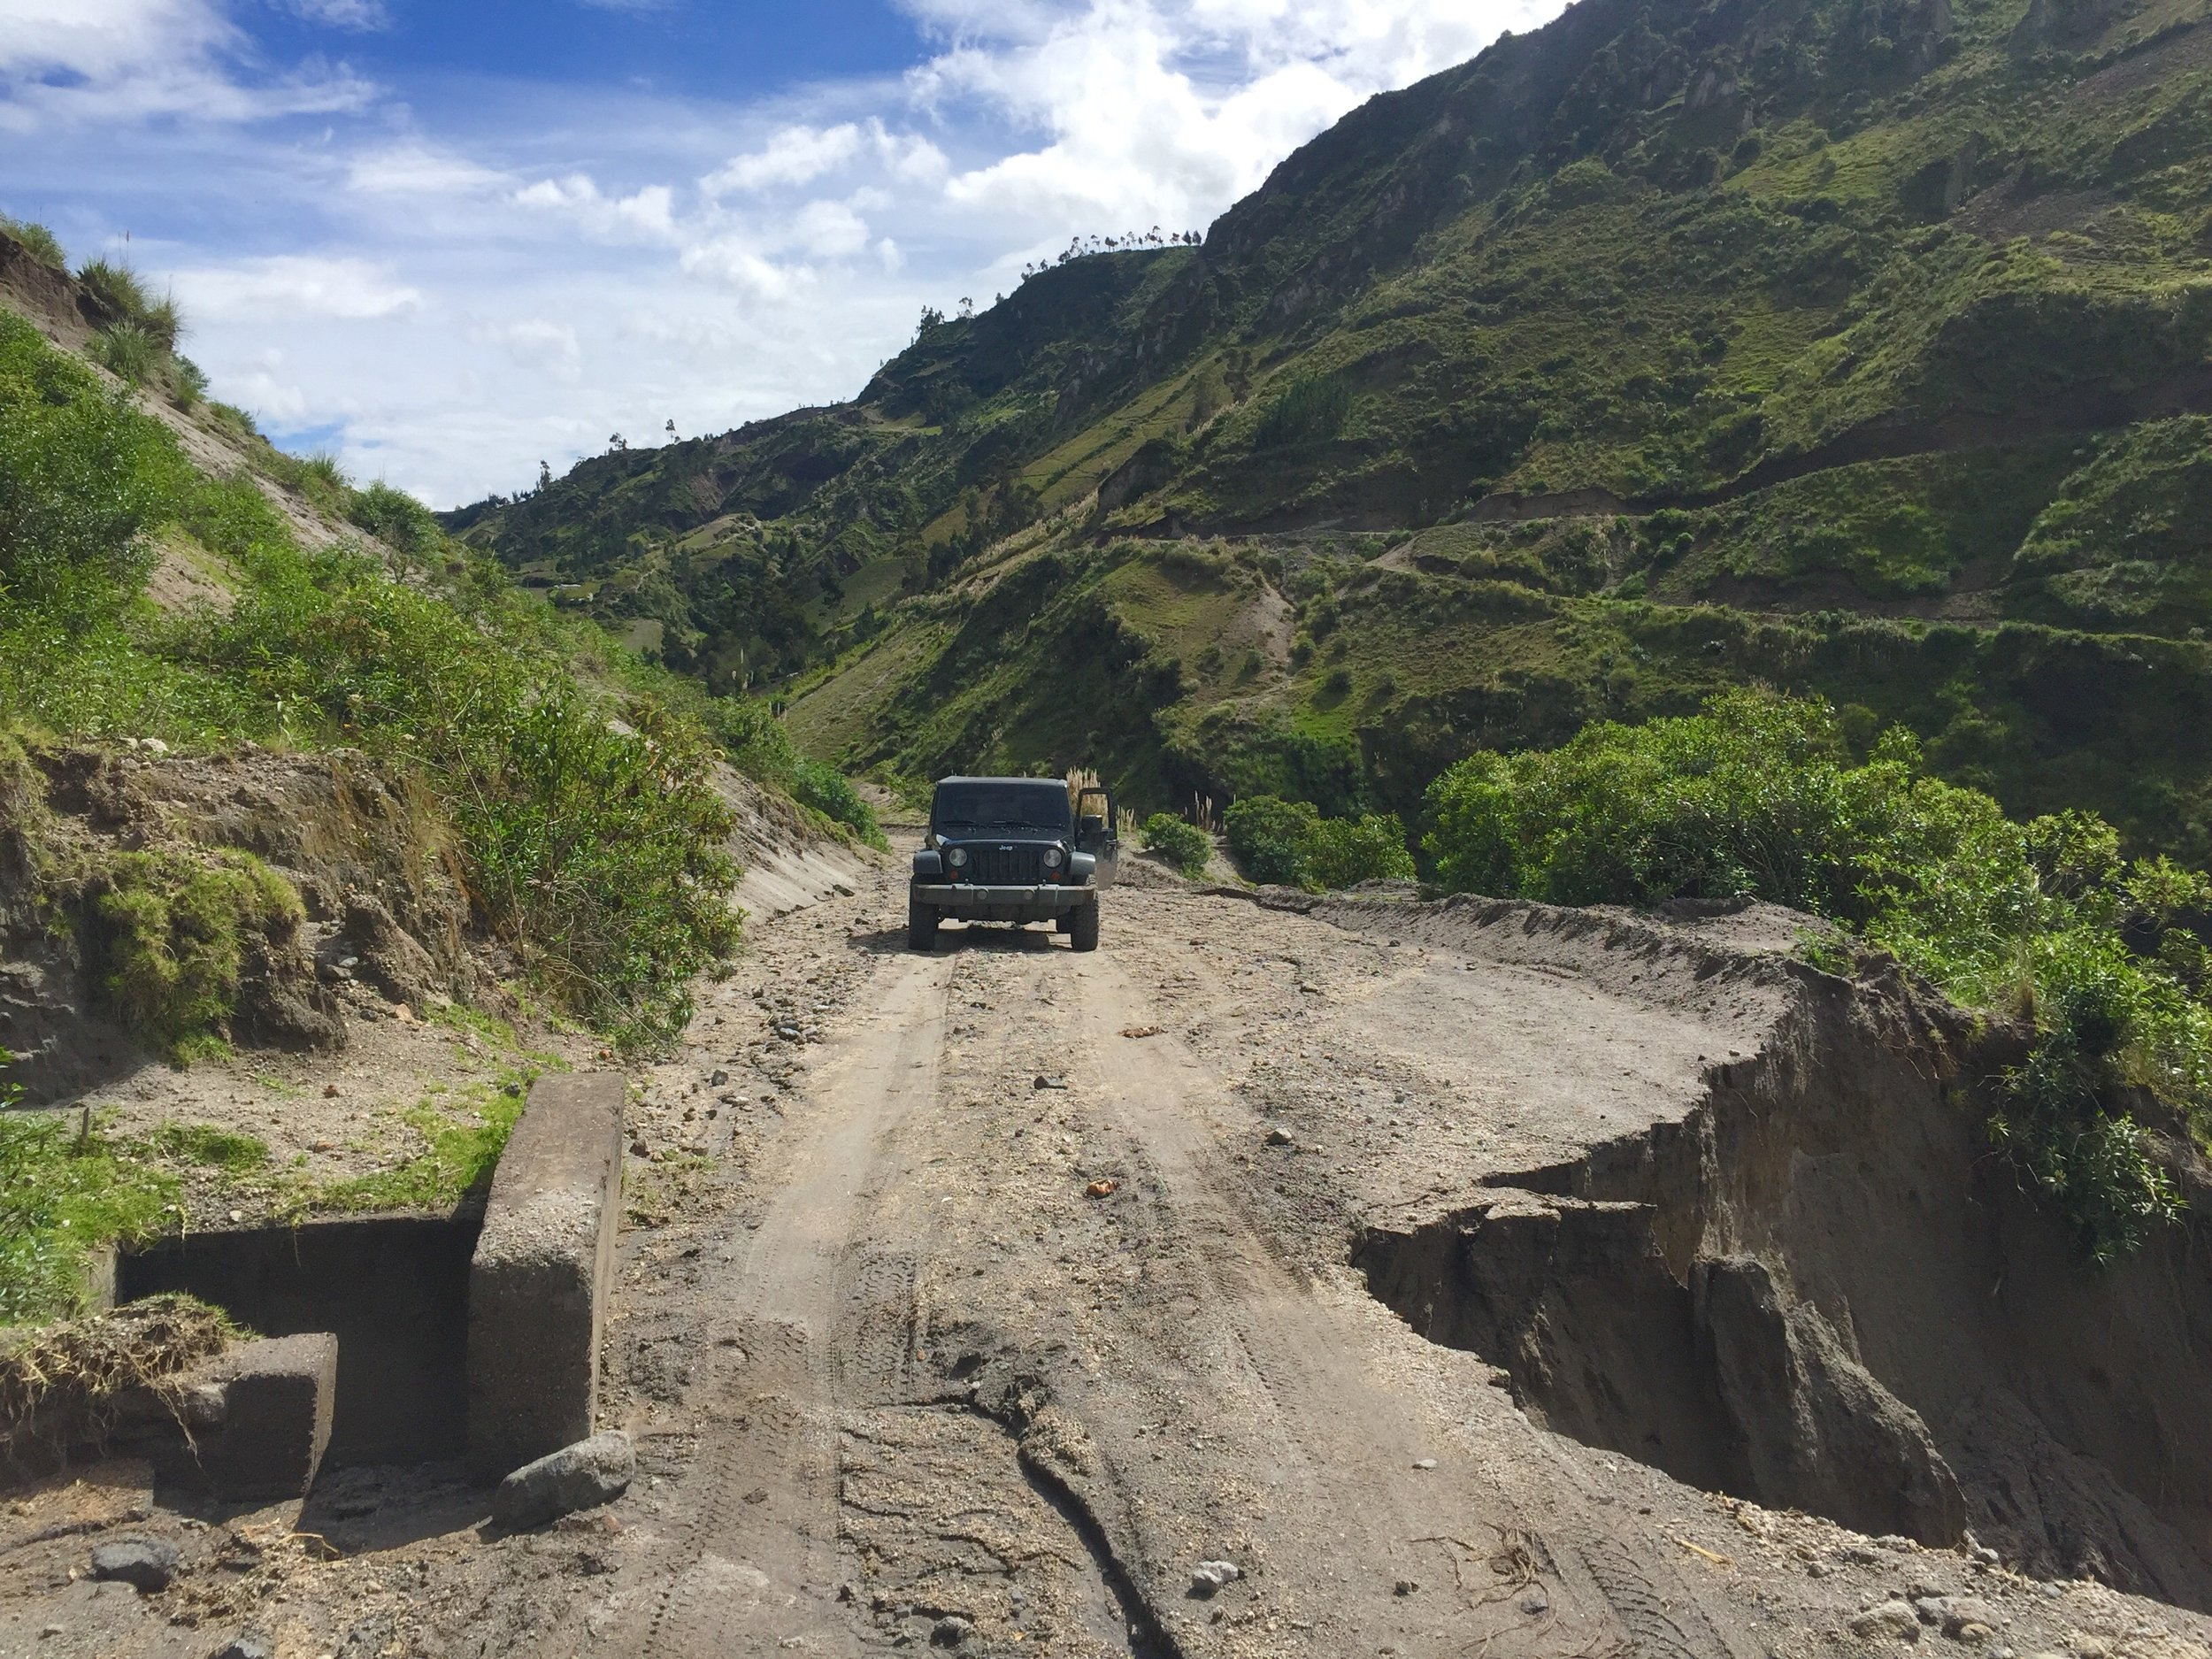 Will it pass? I did not end up trying…too sketchy. This is in Northern Ecuador. I remember trying to get back to the main highway but Maps.me and Google Maps kept trying to make me pass through small dirt road at high altitude. Good thing I had an extra jerry can of fuel.